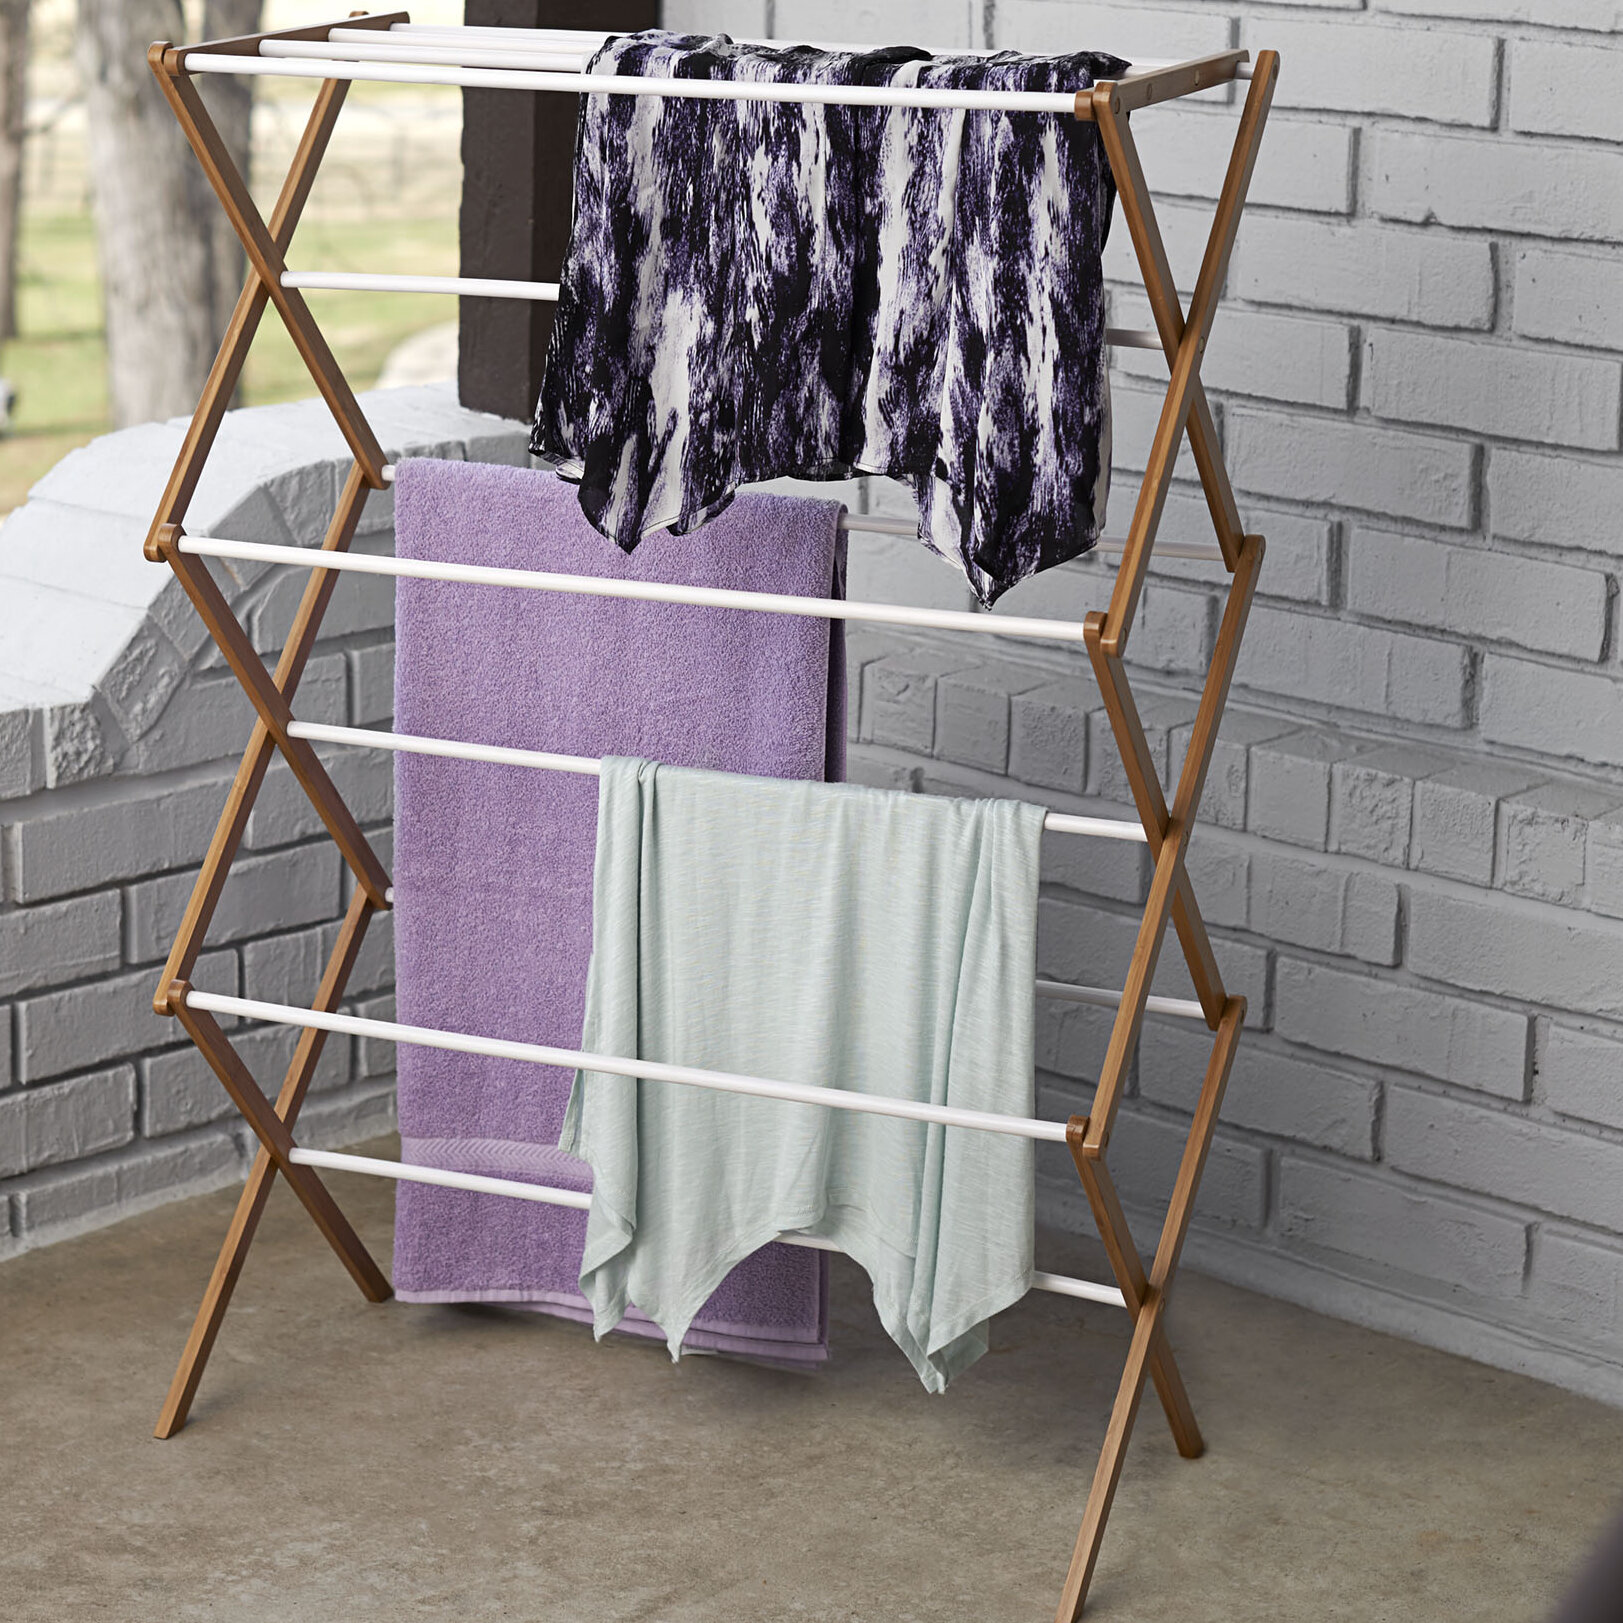 Rebrilliant Bamboo Accordion Free Standing Drying Rack Reviews